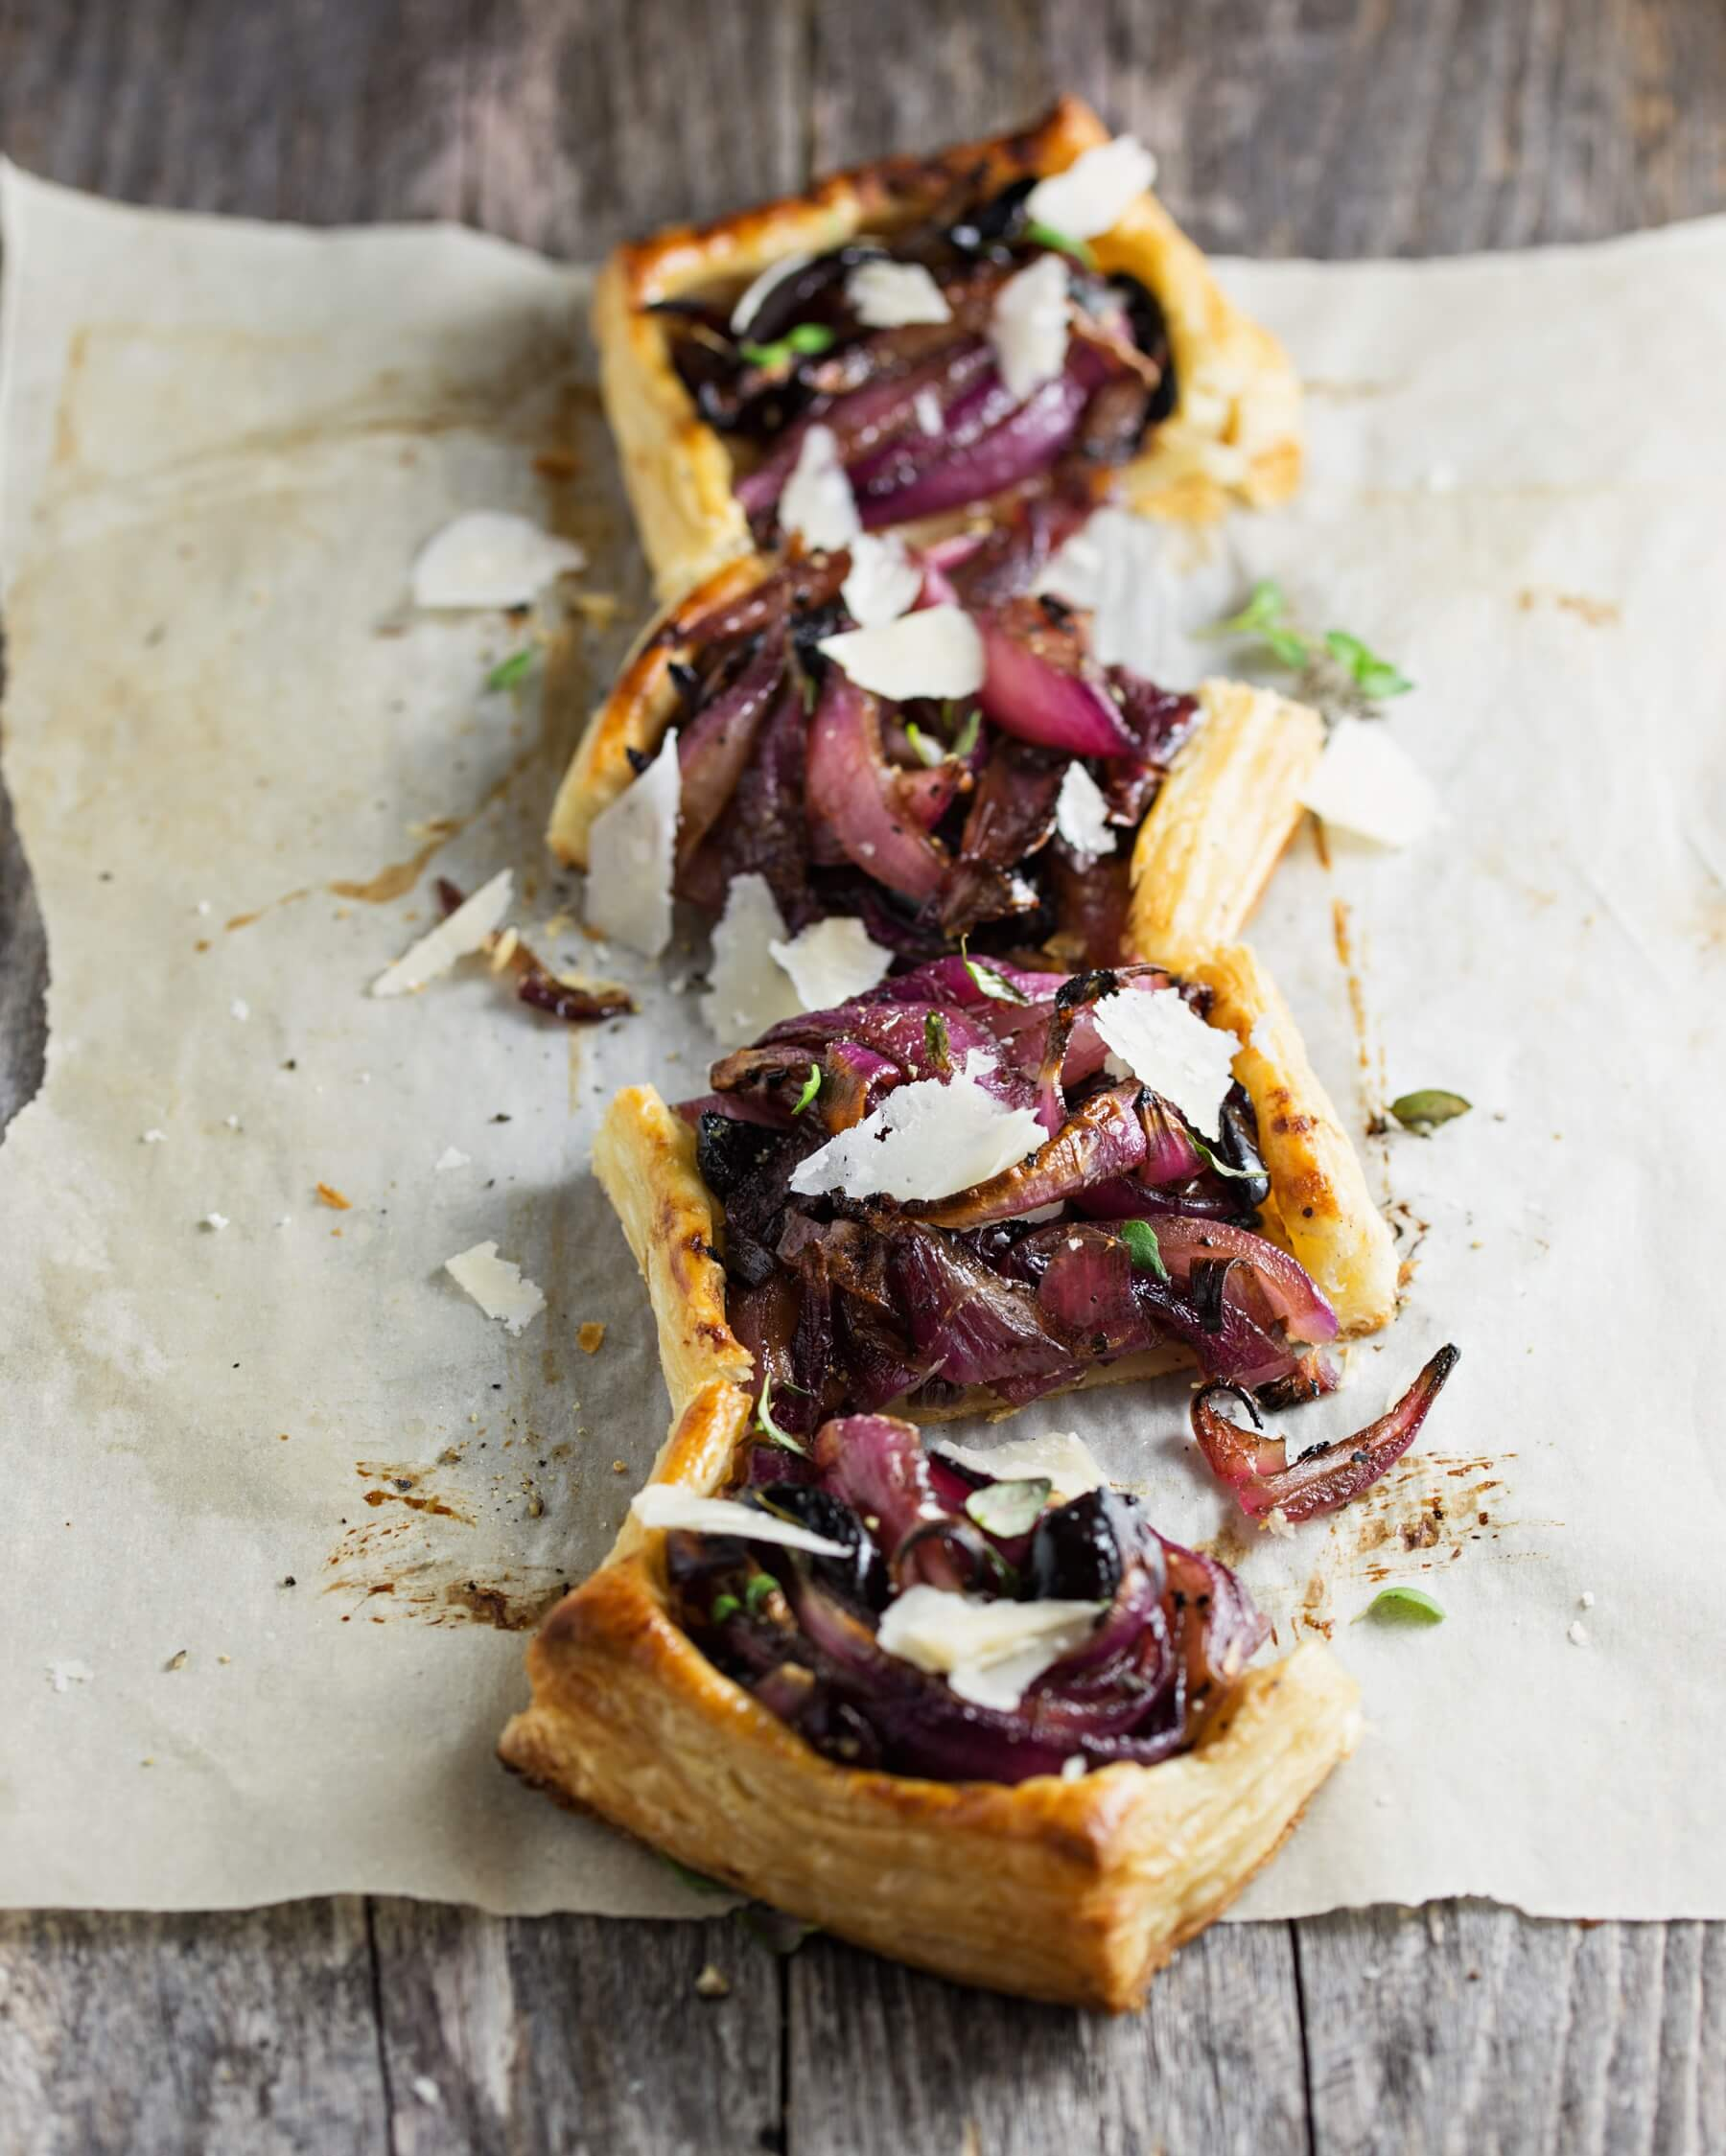 Cheddar and Red Onion Pastries Recipe